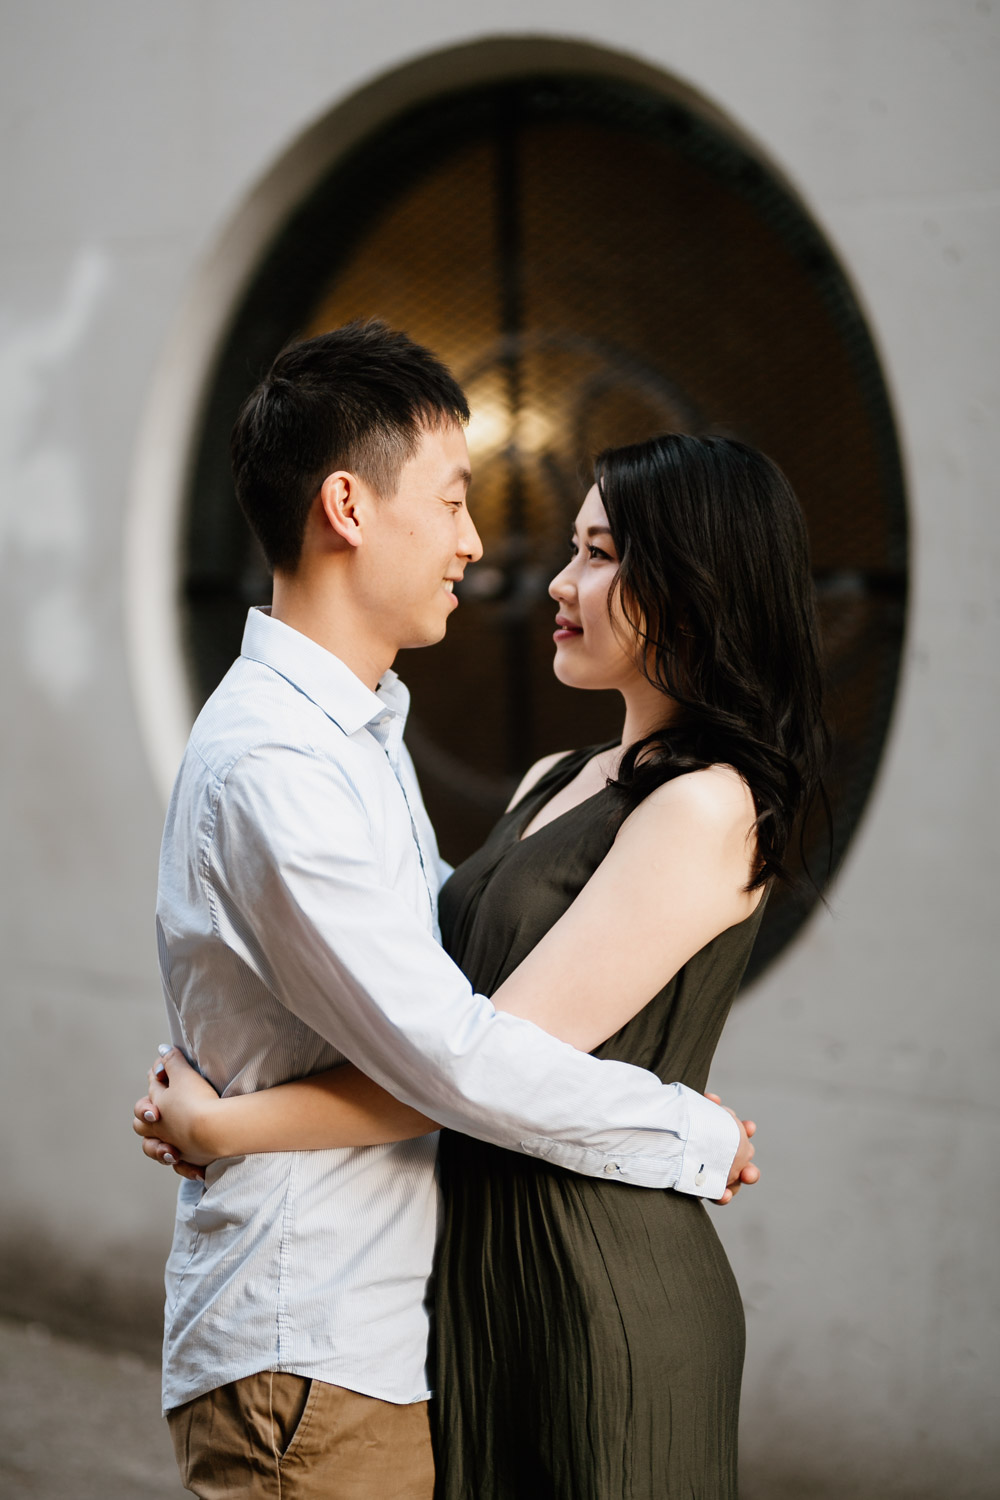 gastown engagement photography in vancouver bc during sunset or golden hour